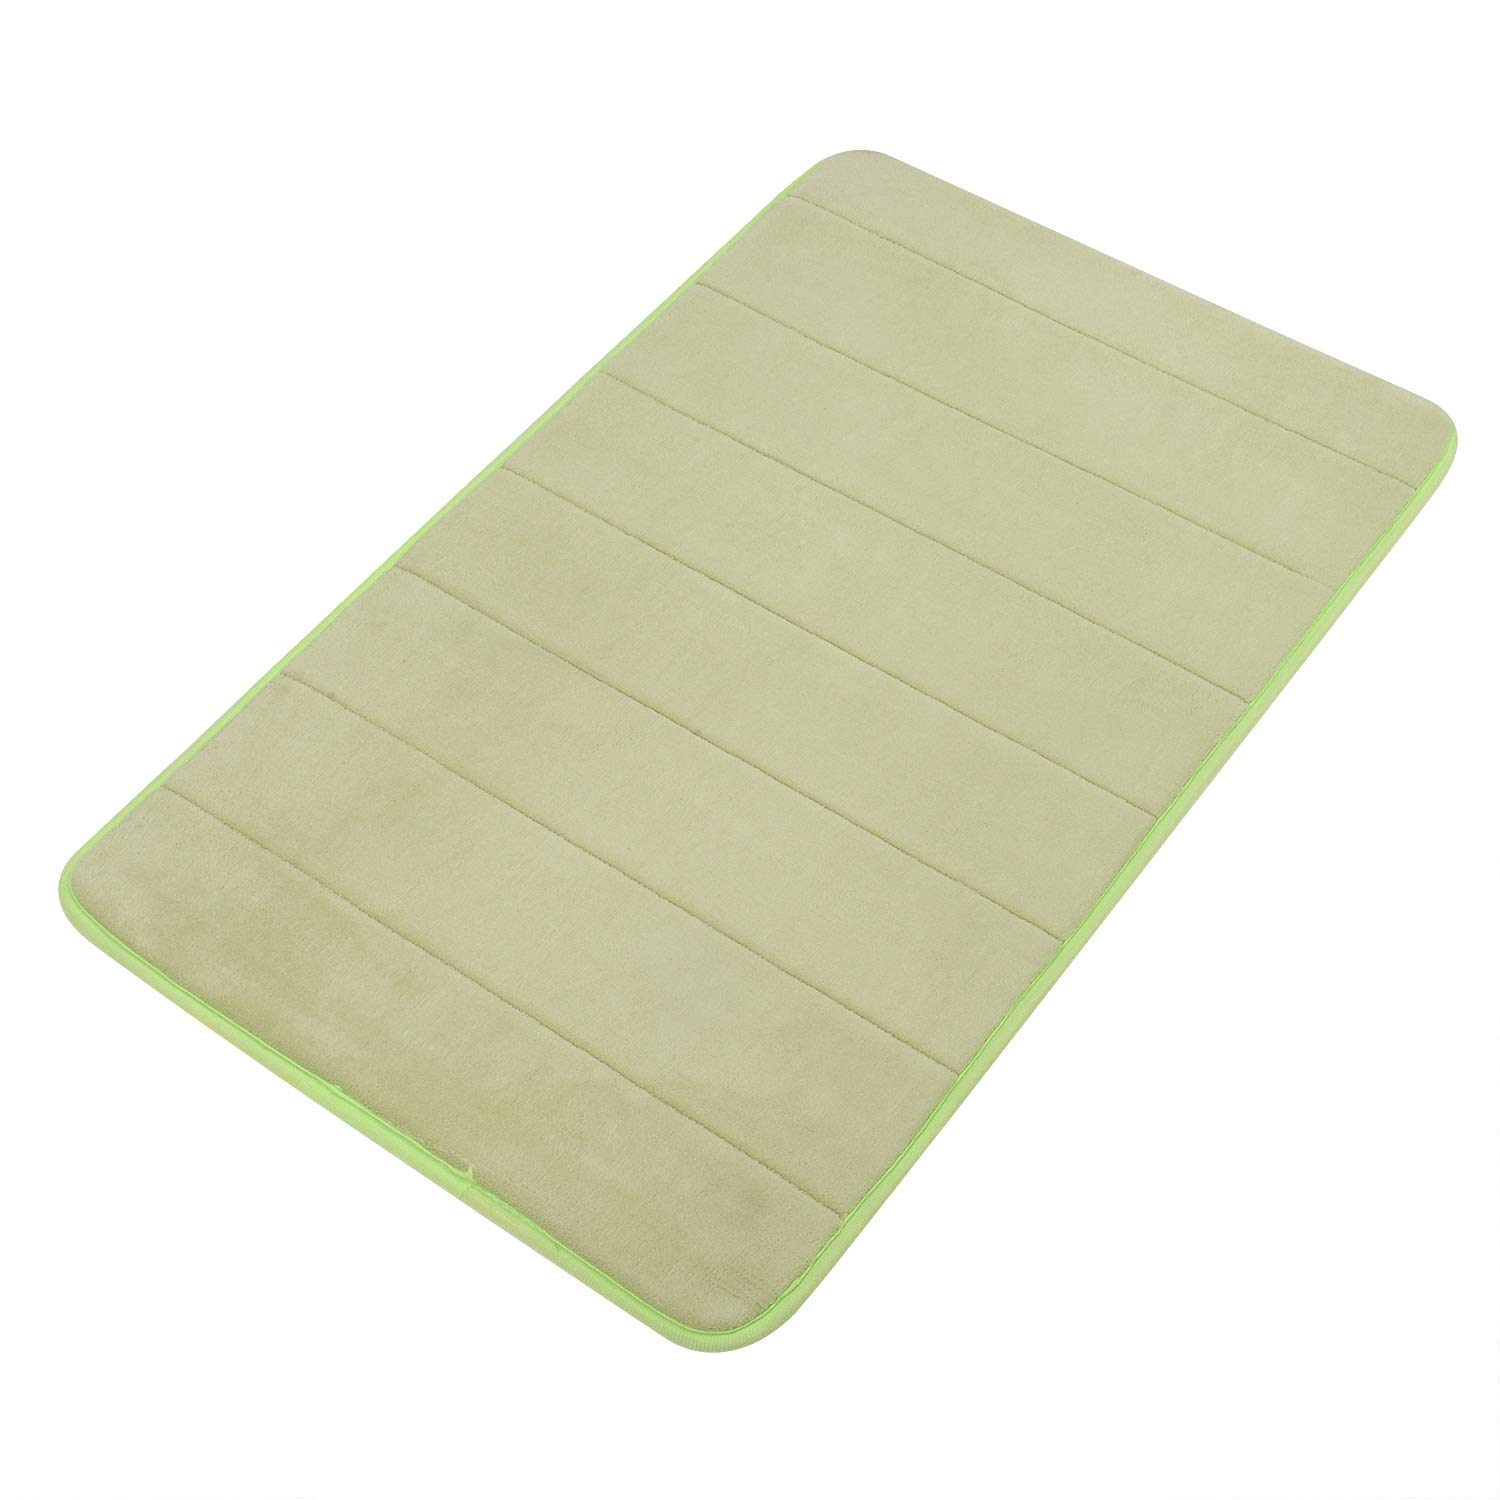 Grand Era Incredibly Soft and Absorbent Memory Foam Bath Mat, 16 x 24 inch, Soft, Non-slip, High Absorbency KYELW4060